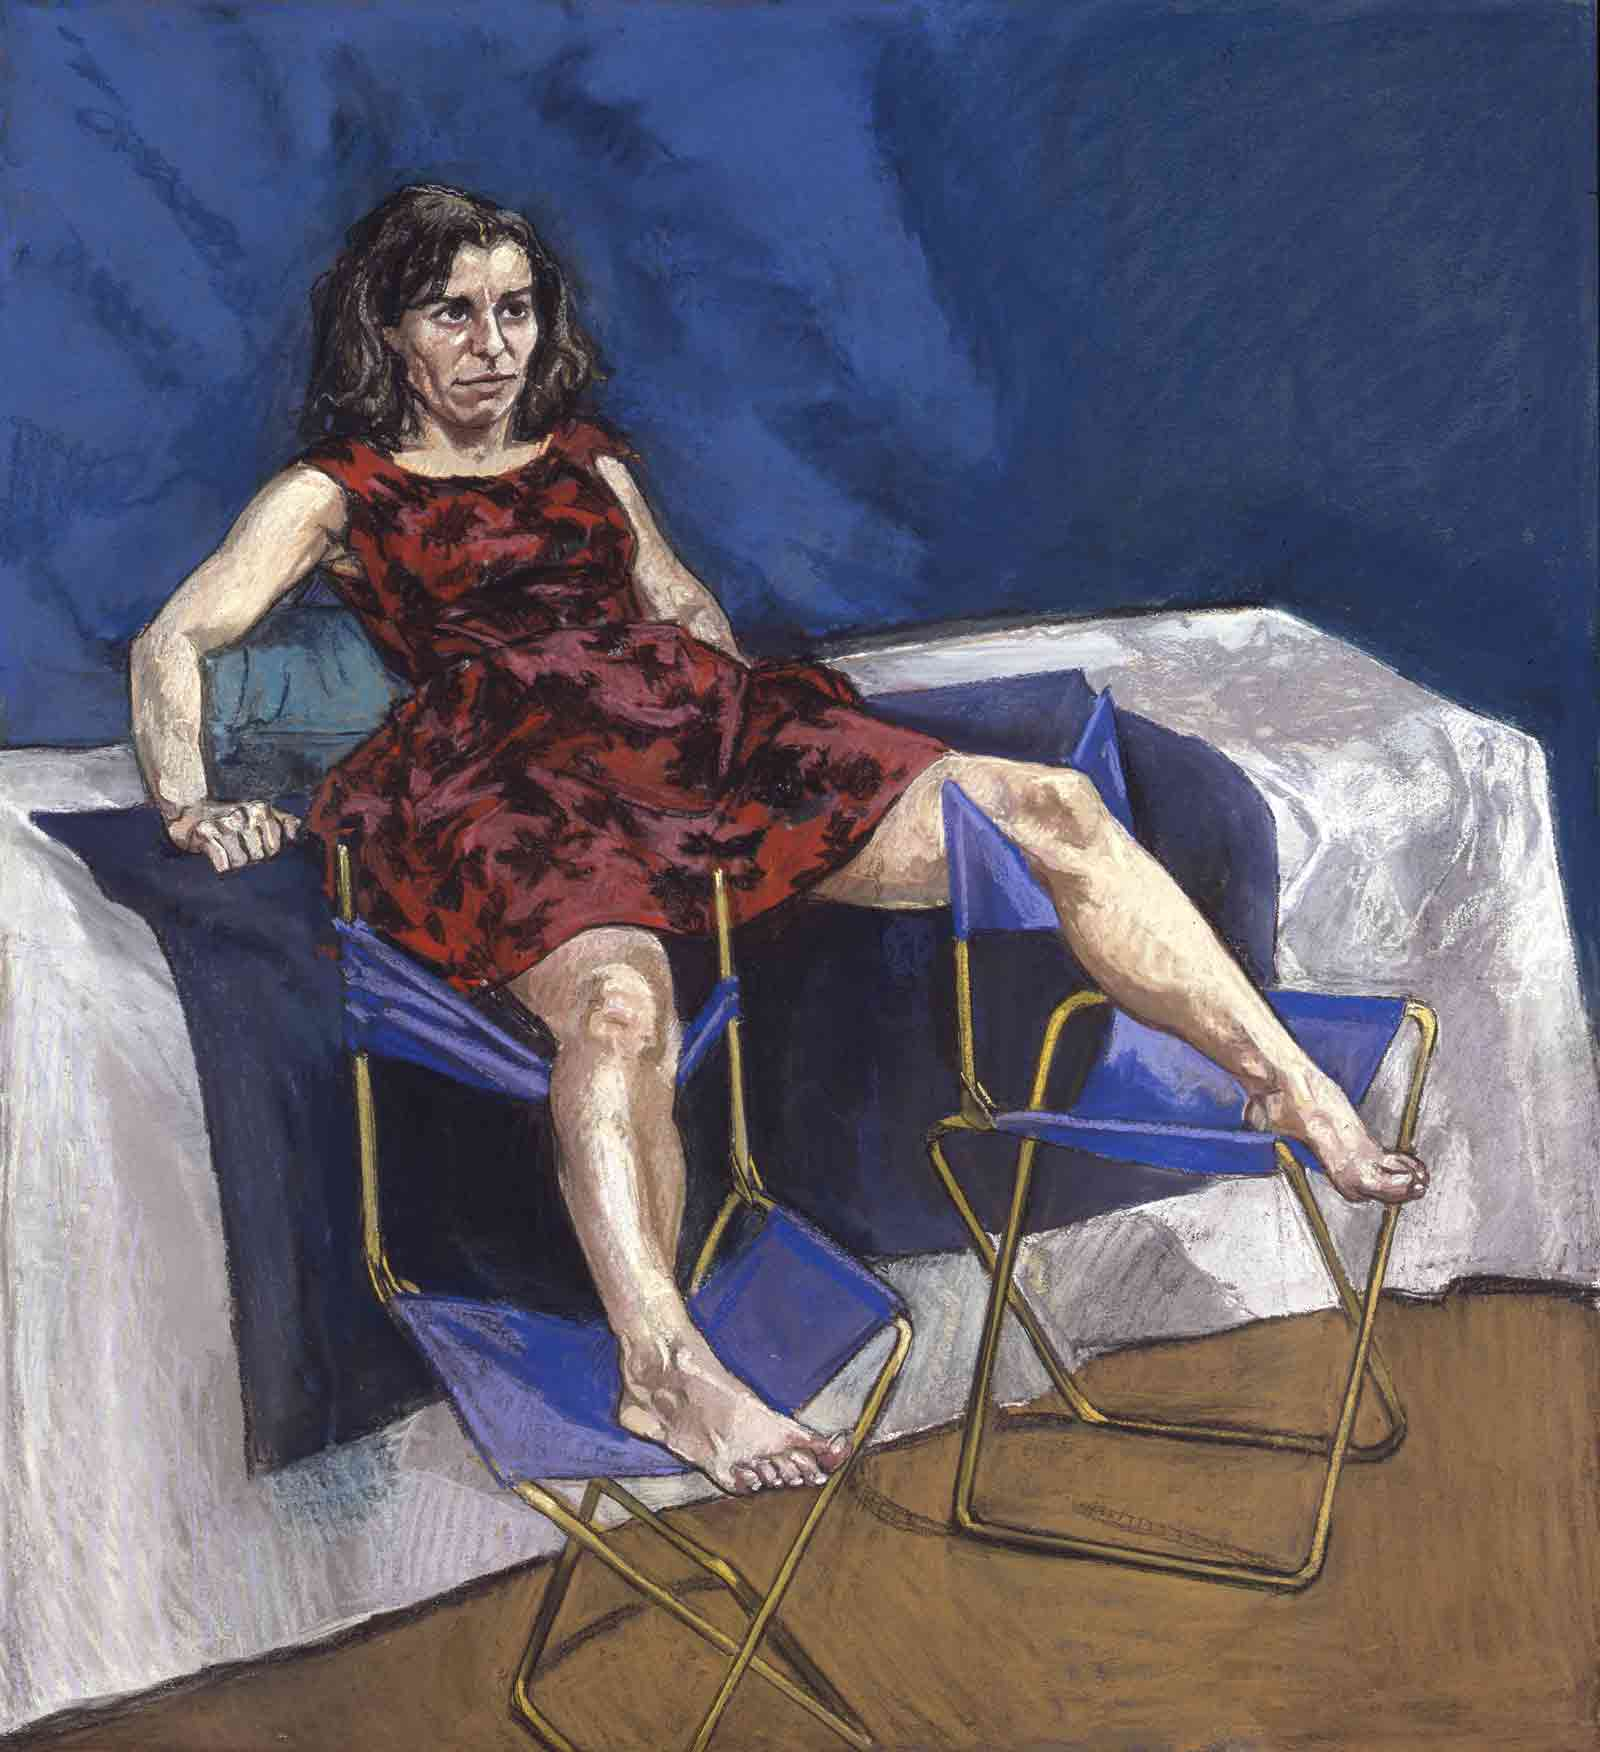 Paula Rego: Untitled No. 5, from the Abortion Pastels, 1998